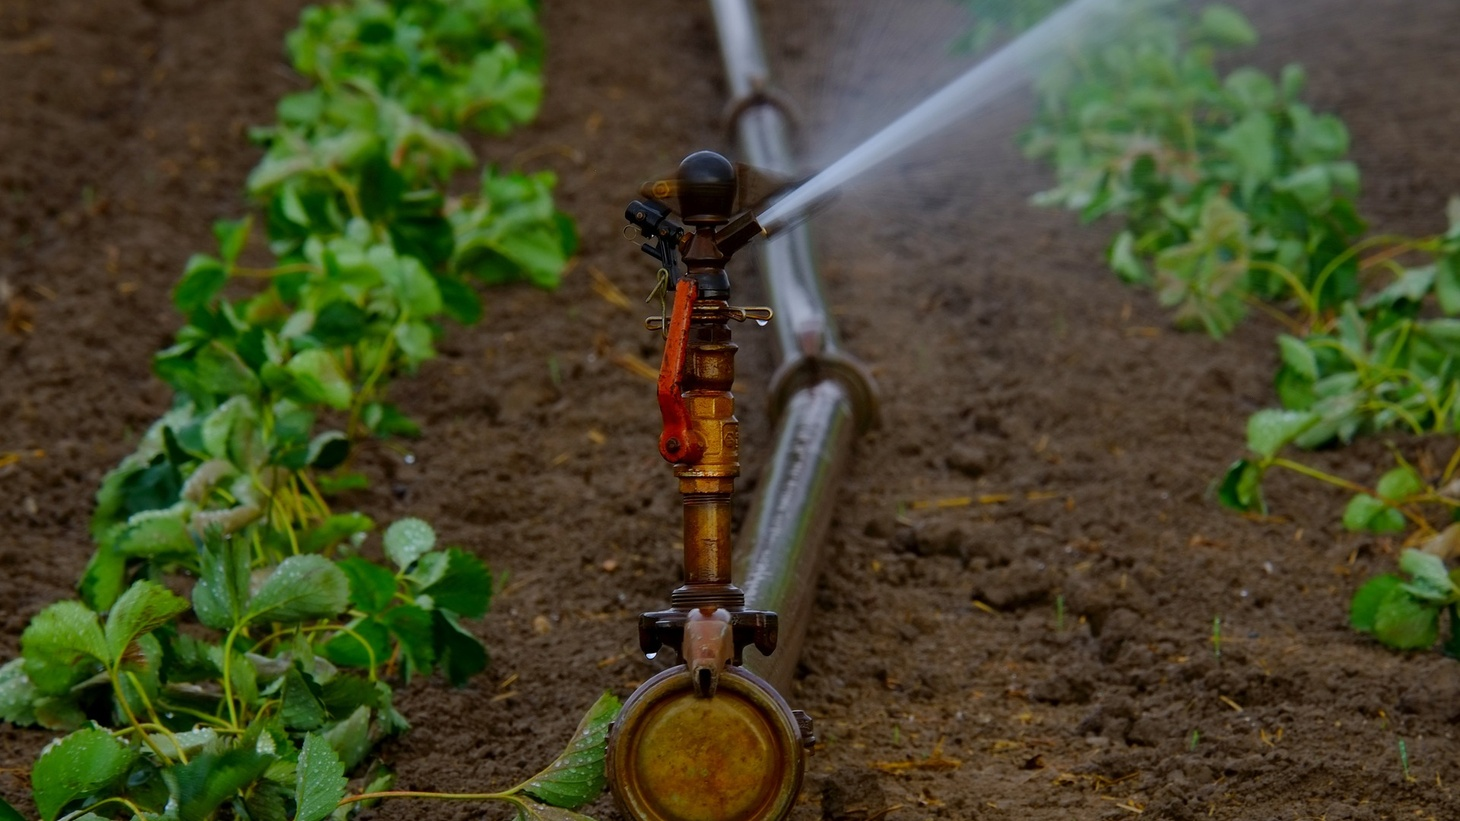 California's water is now an item on the stock market, and farmers can bet on its future price.